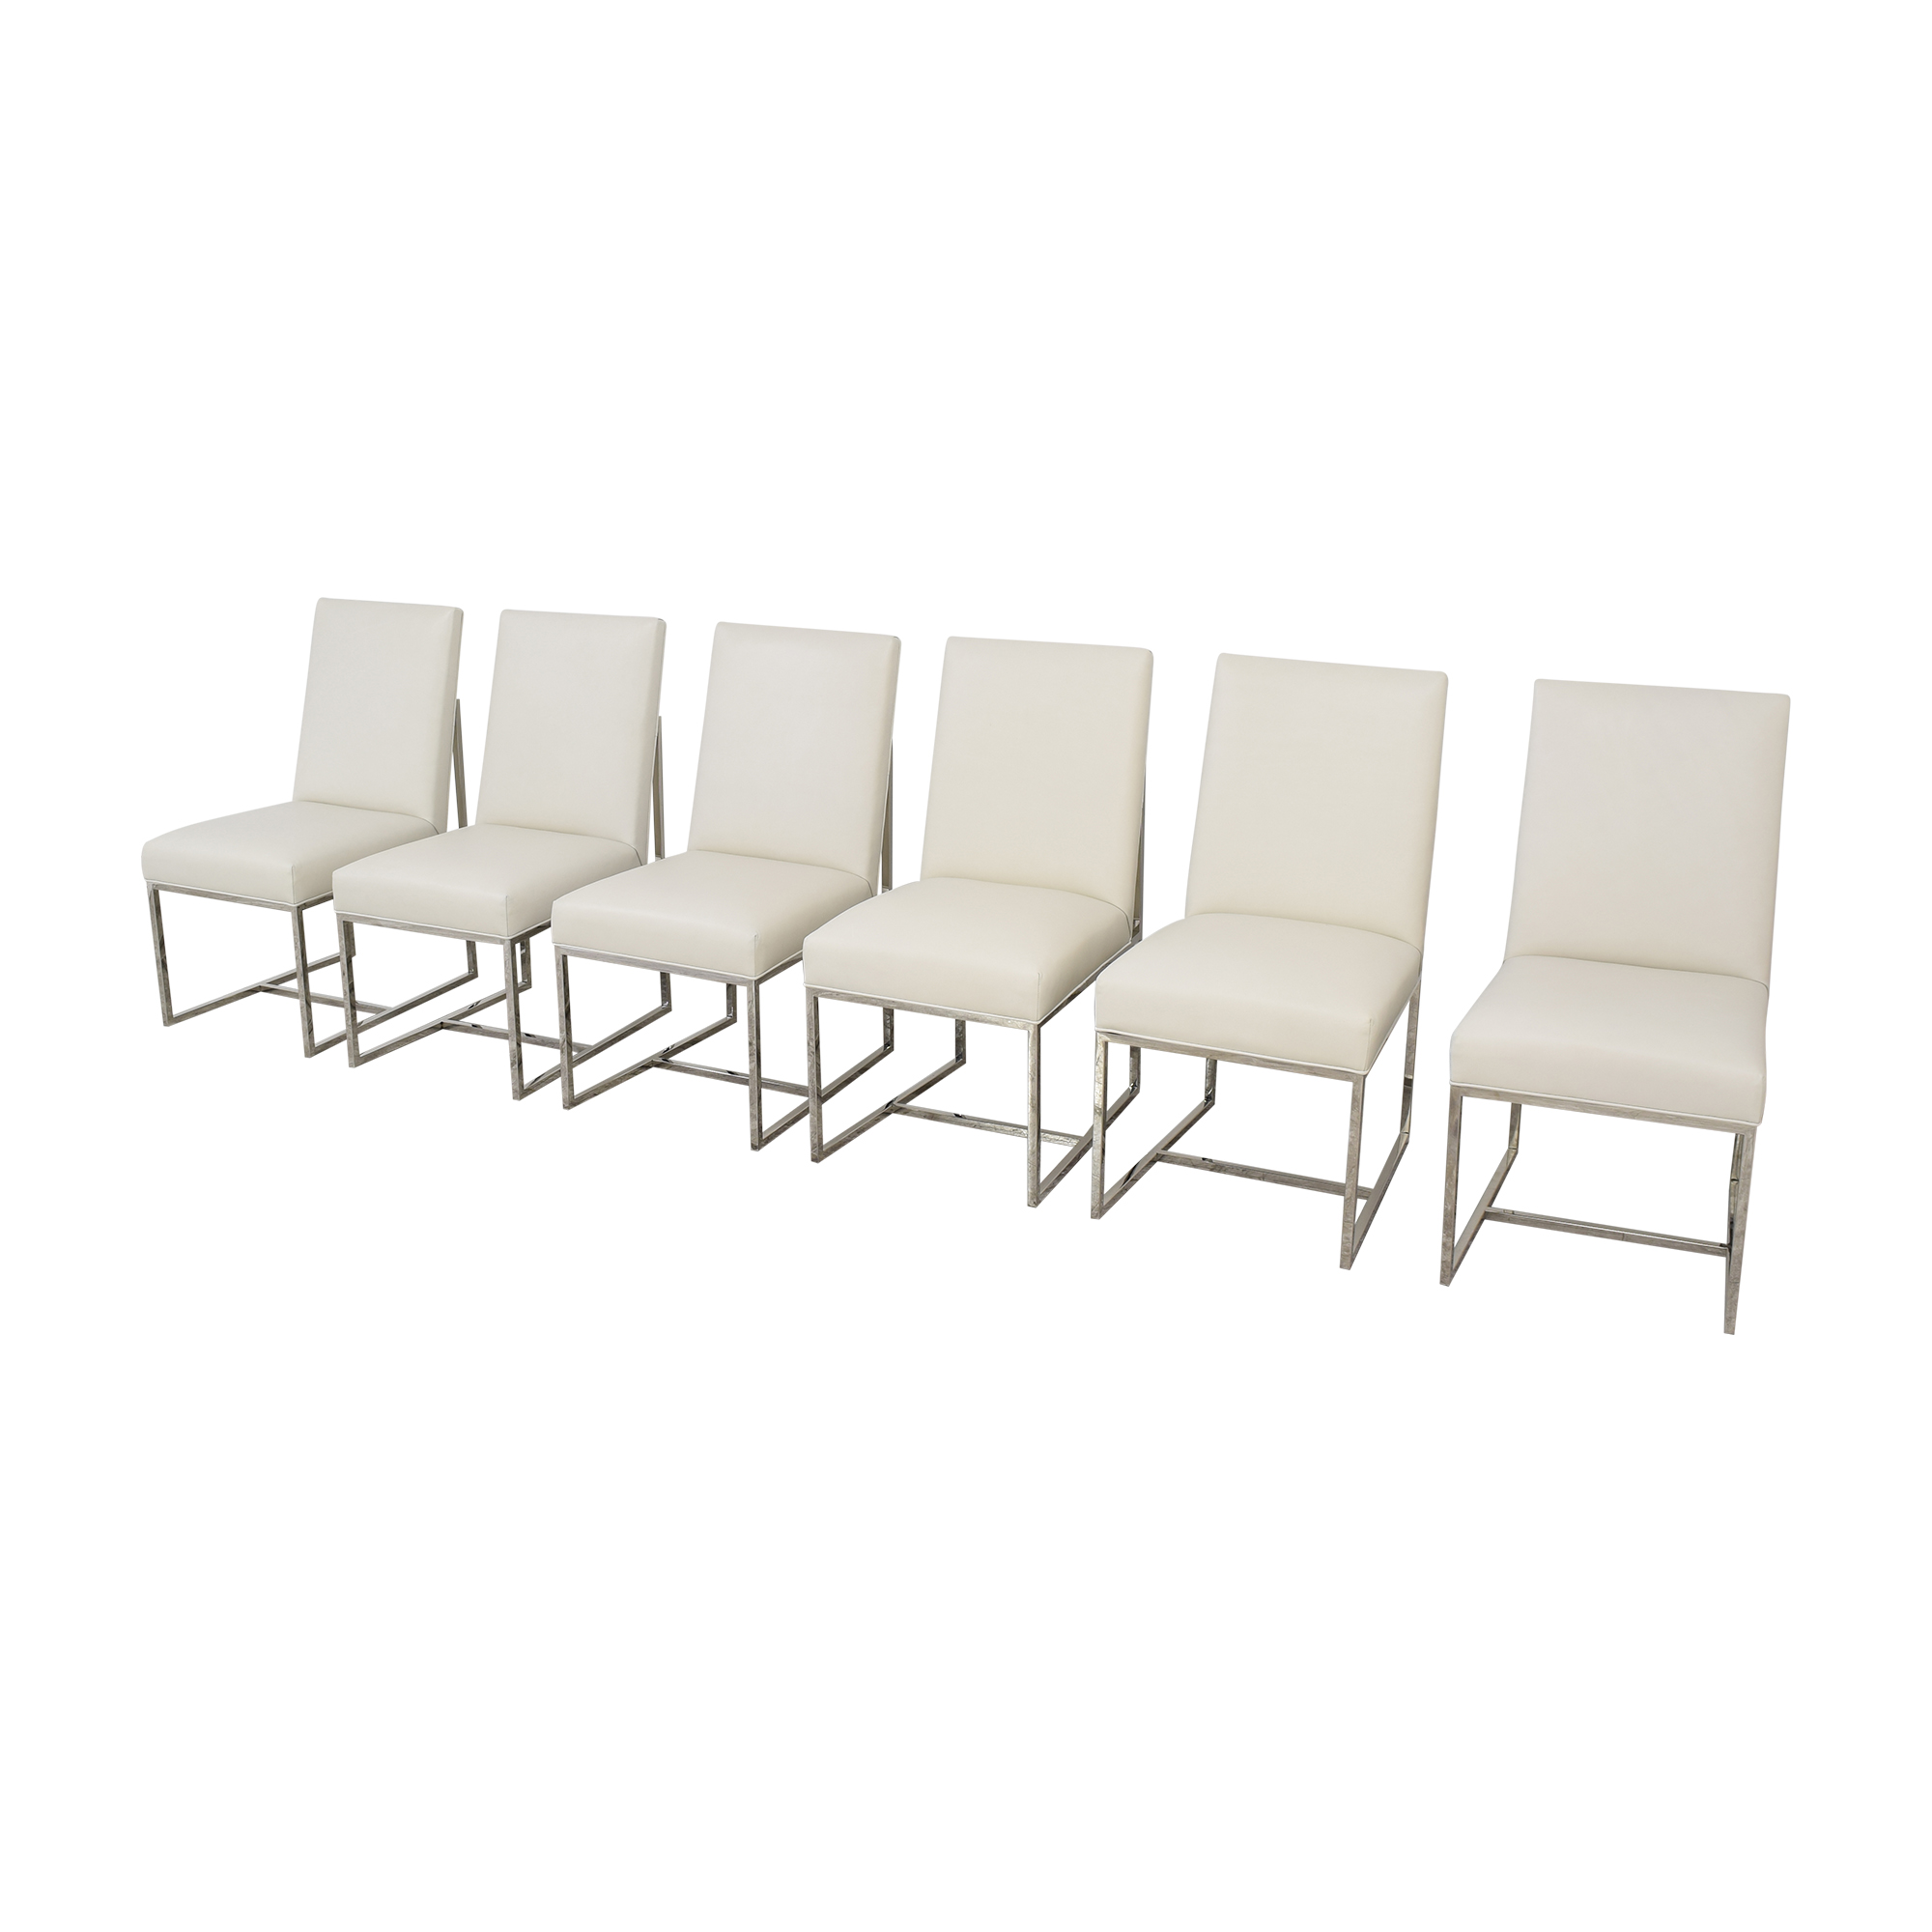 Restoration Hardware Restoration Hardware Grant Leather Side Chairs white and silver